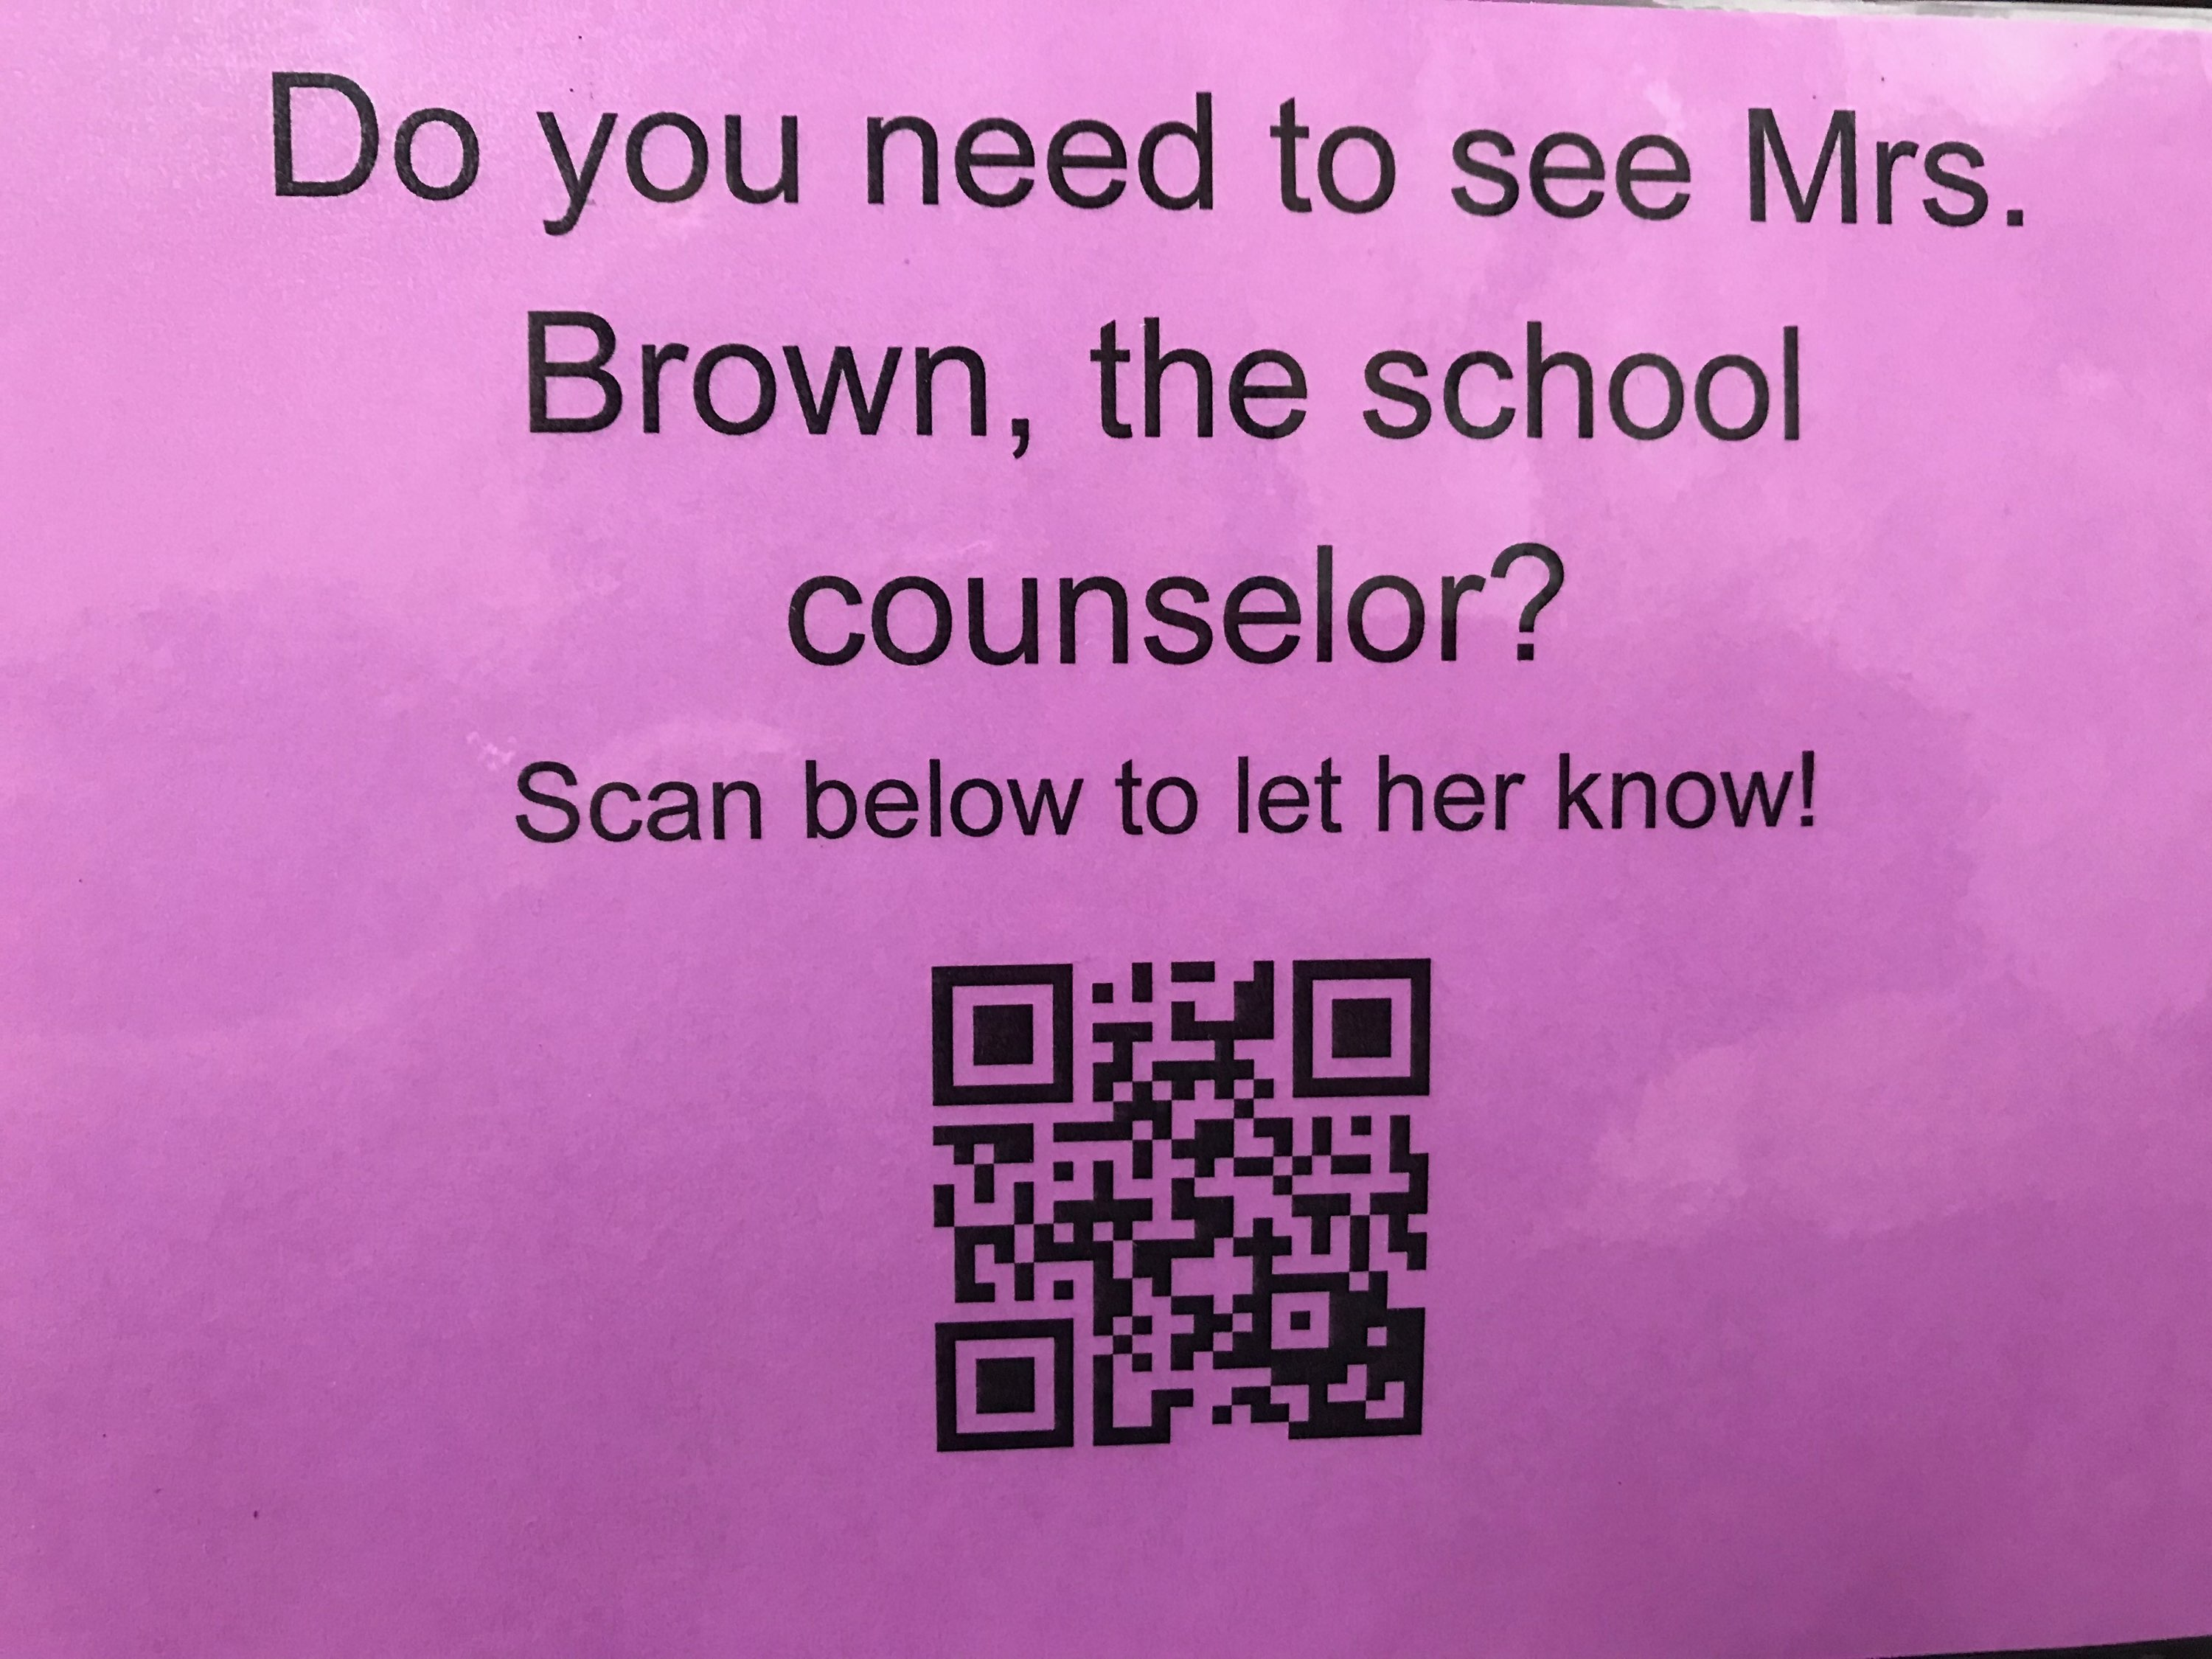 Scan for counselor assistance